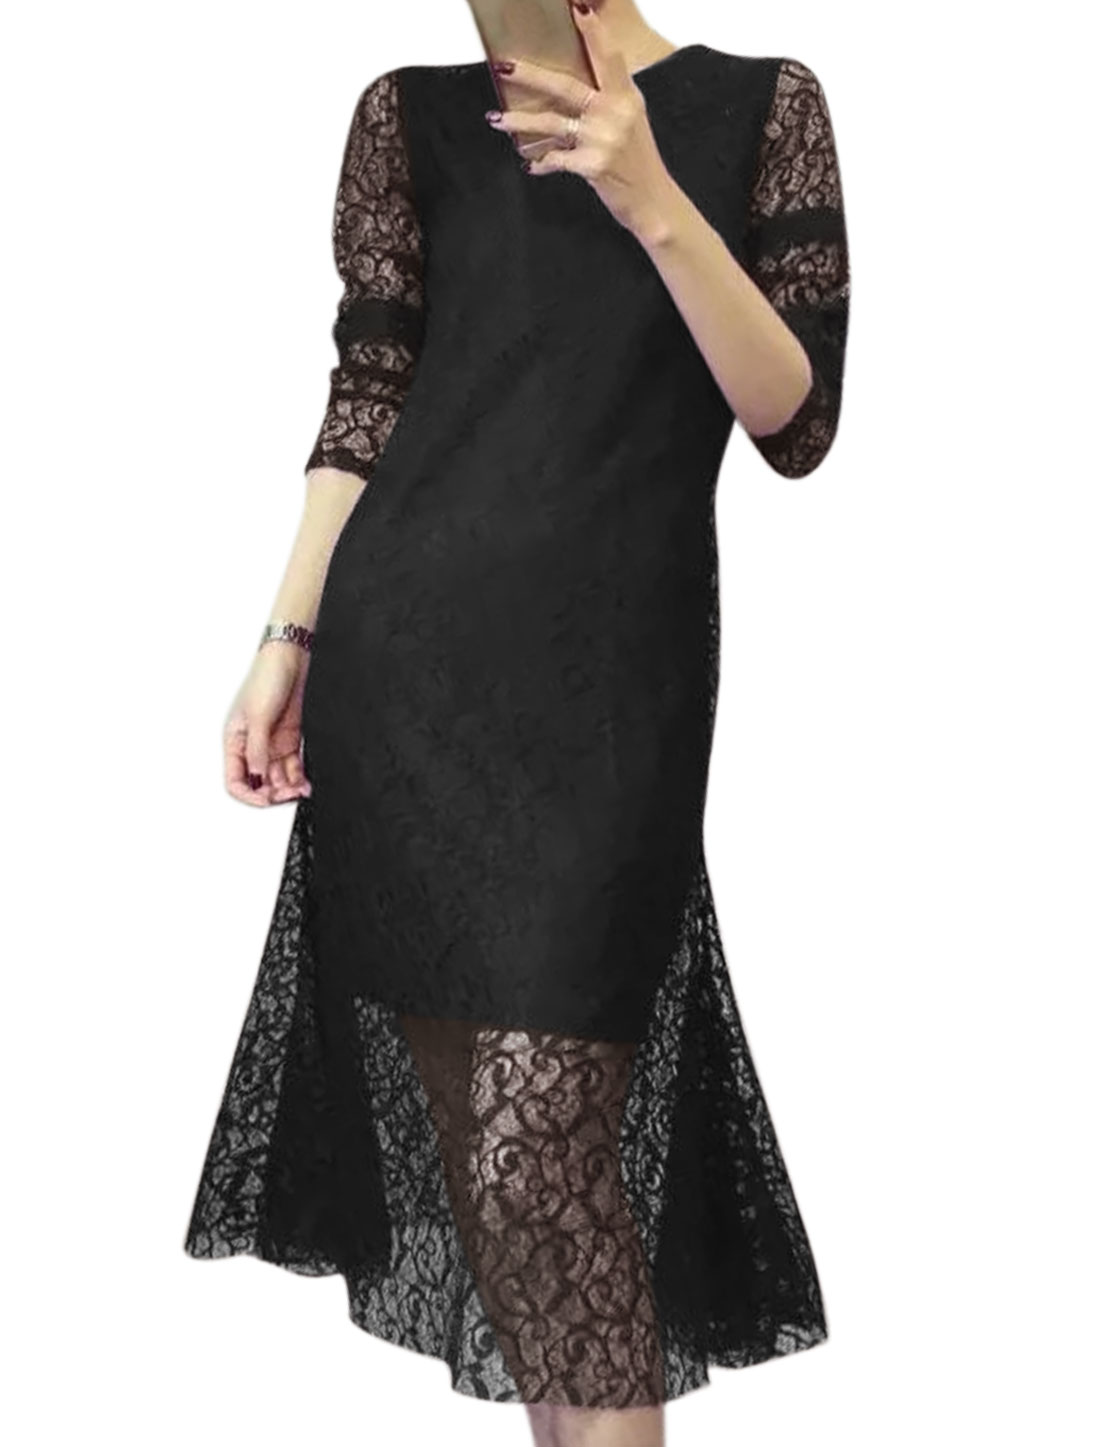 Women Long Sleeves Mid Calf Flare Hem Slim Fit Lace Dress Black S